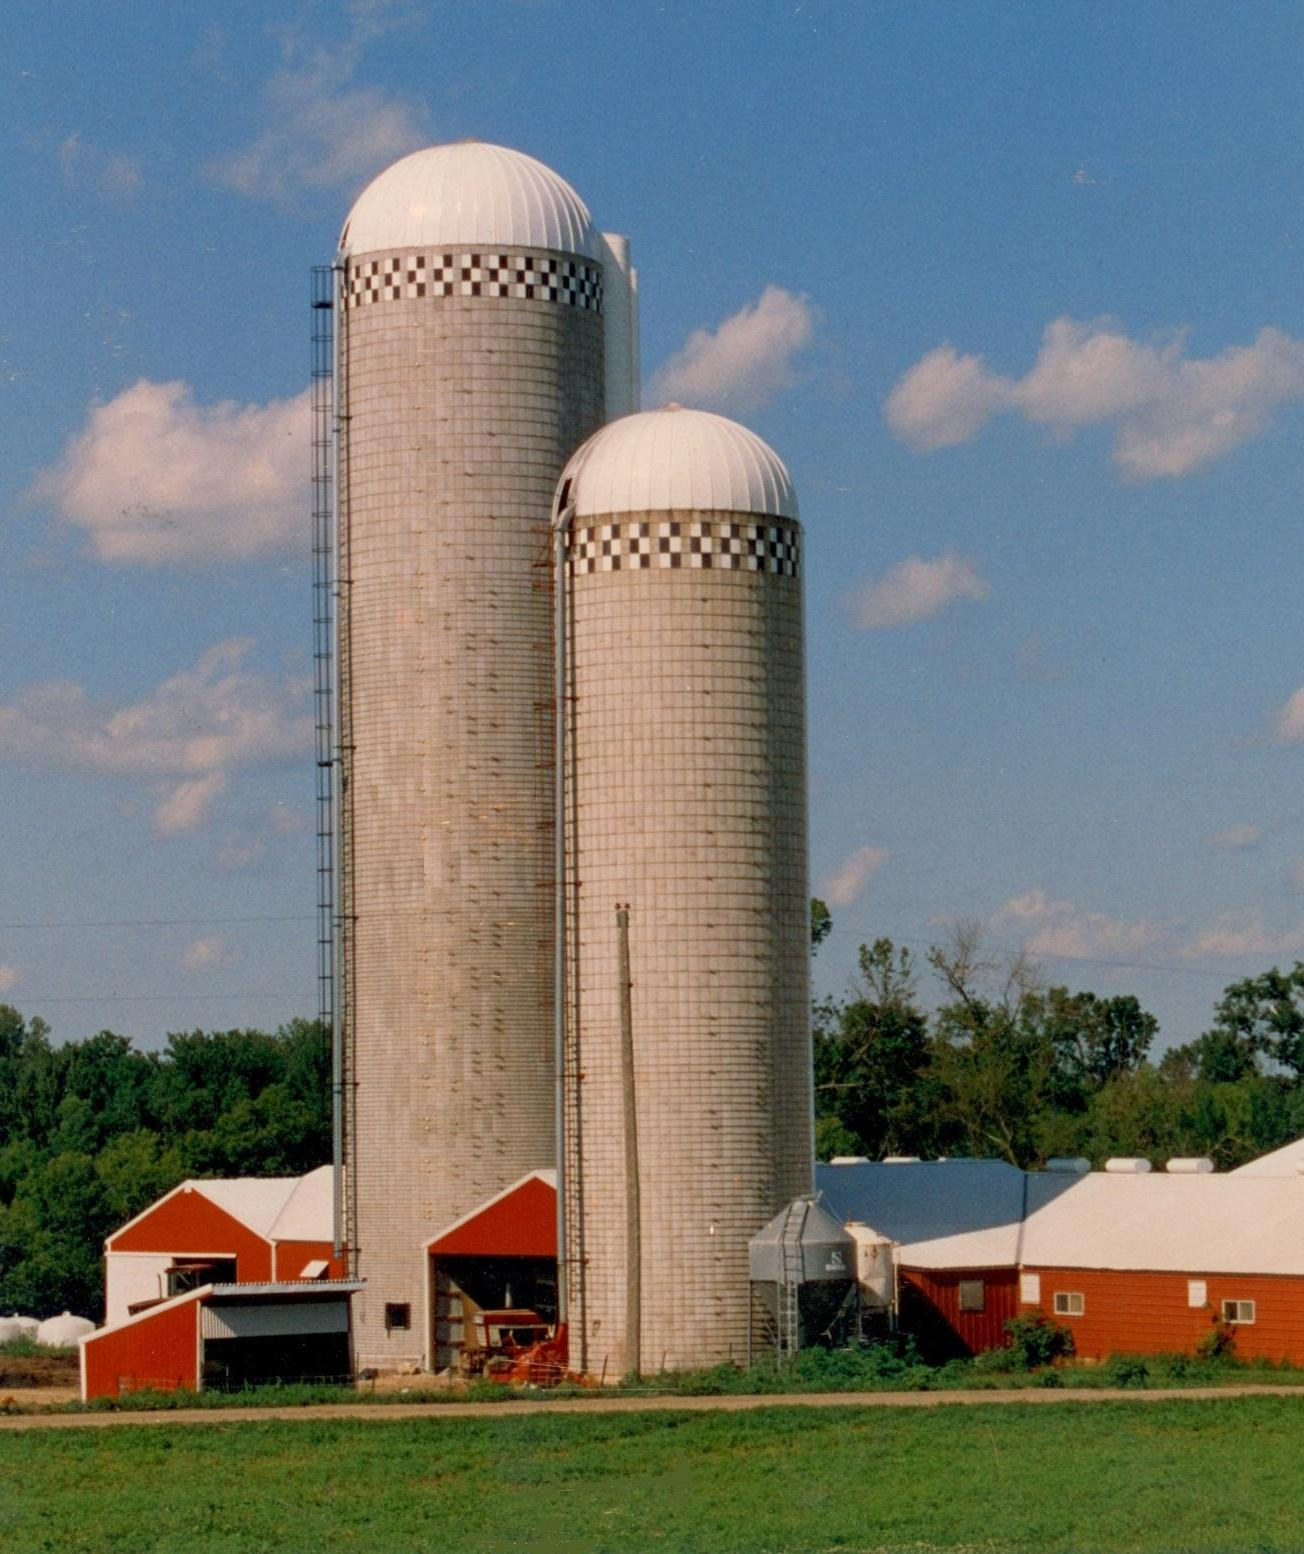 Overcoming Silos (Part 1)